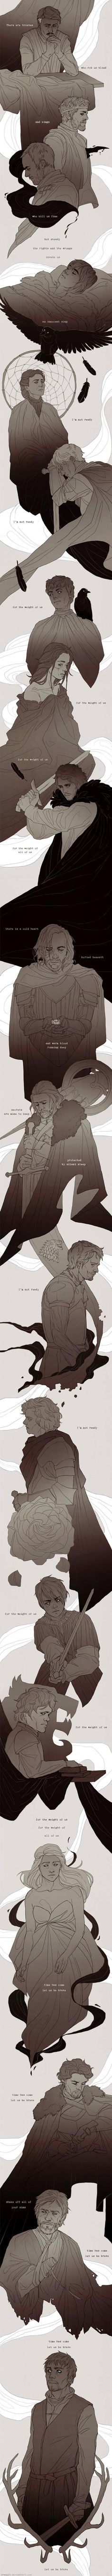 A Song of Ice and Fire. - Imgur with lyrics from the song the Weight of Us by Sanders Bohlke